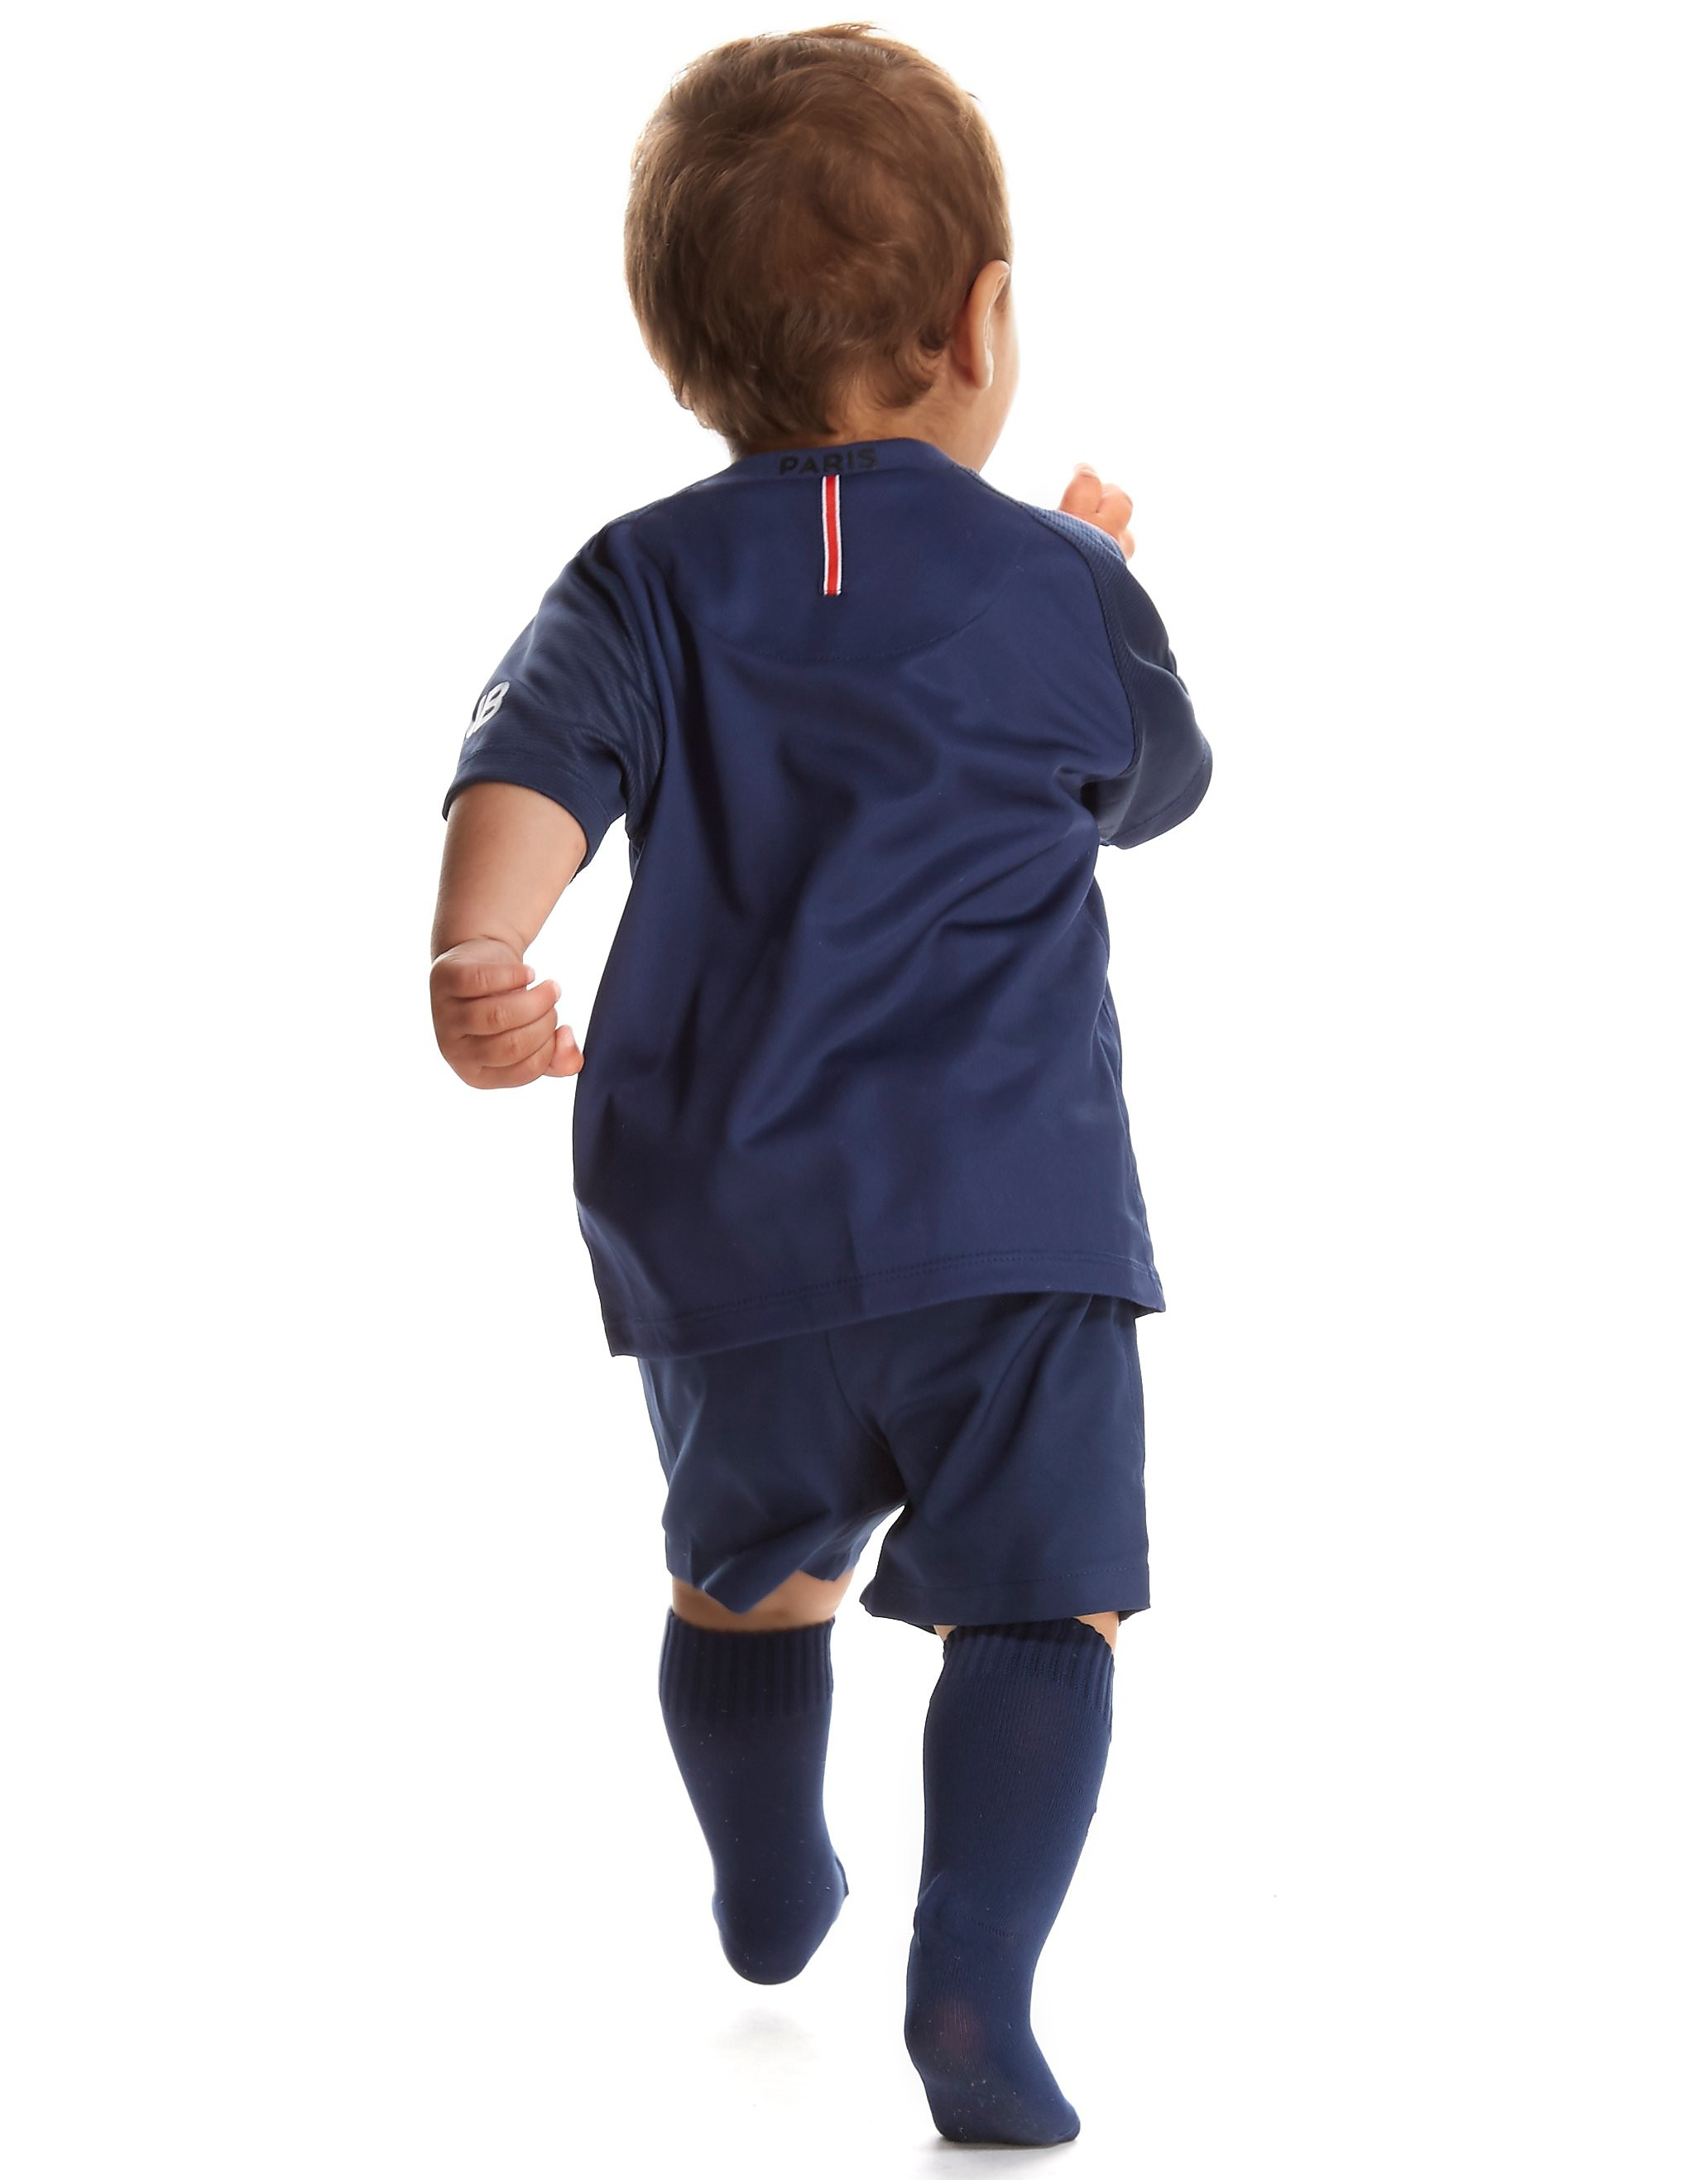 Nike Ensemble domicile Paris Saint-Germain 2016/17 bébé